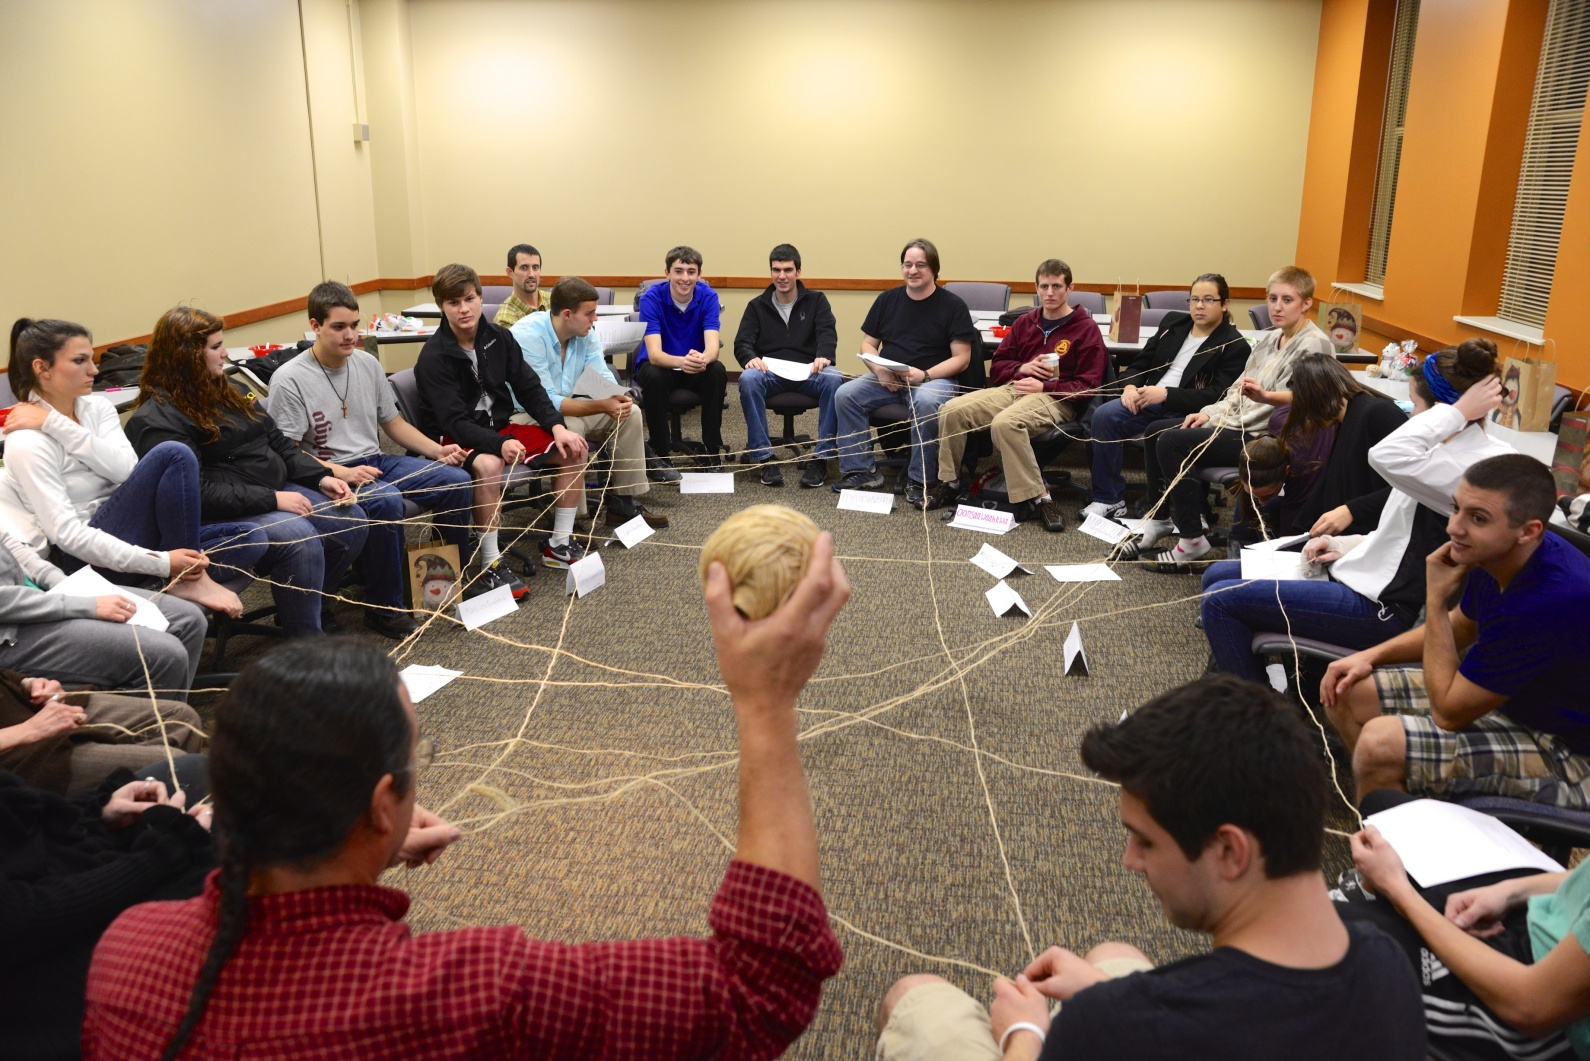 A group of about 20 students sits in chairs in a circle that takes up the whole room. Twine criss-crosses the empty center of the circle, as some students hang onto a piece of it. In the foreground, a man in a red plaid shirt, whose back is the the camera, holds a ball of twine up in the air with his right hand.